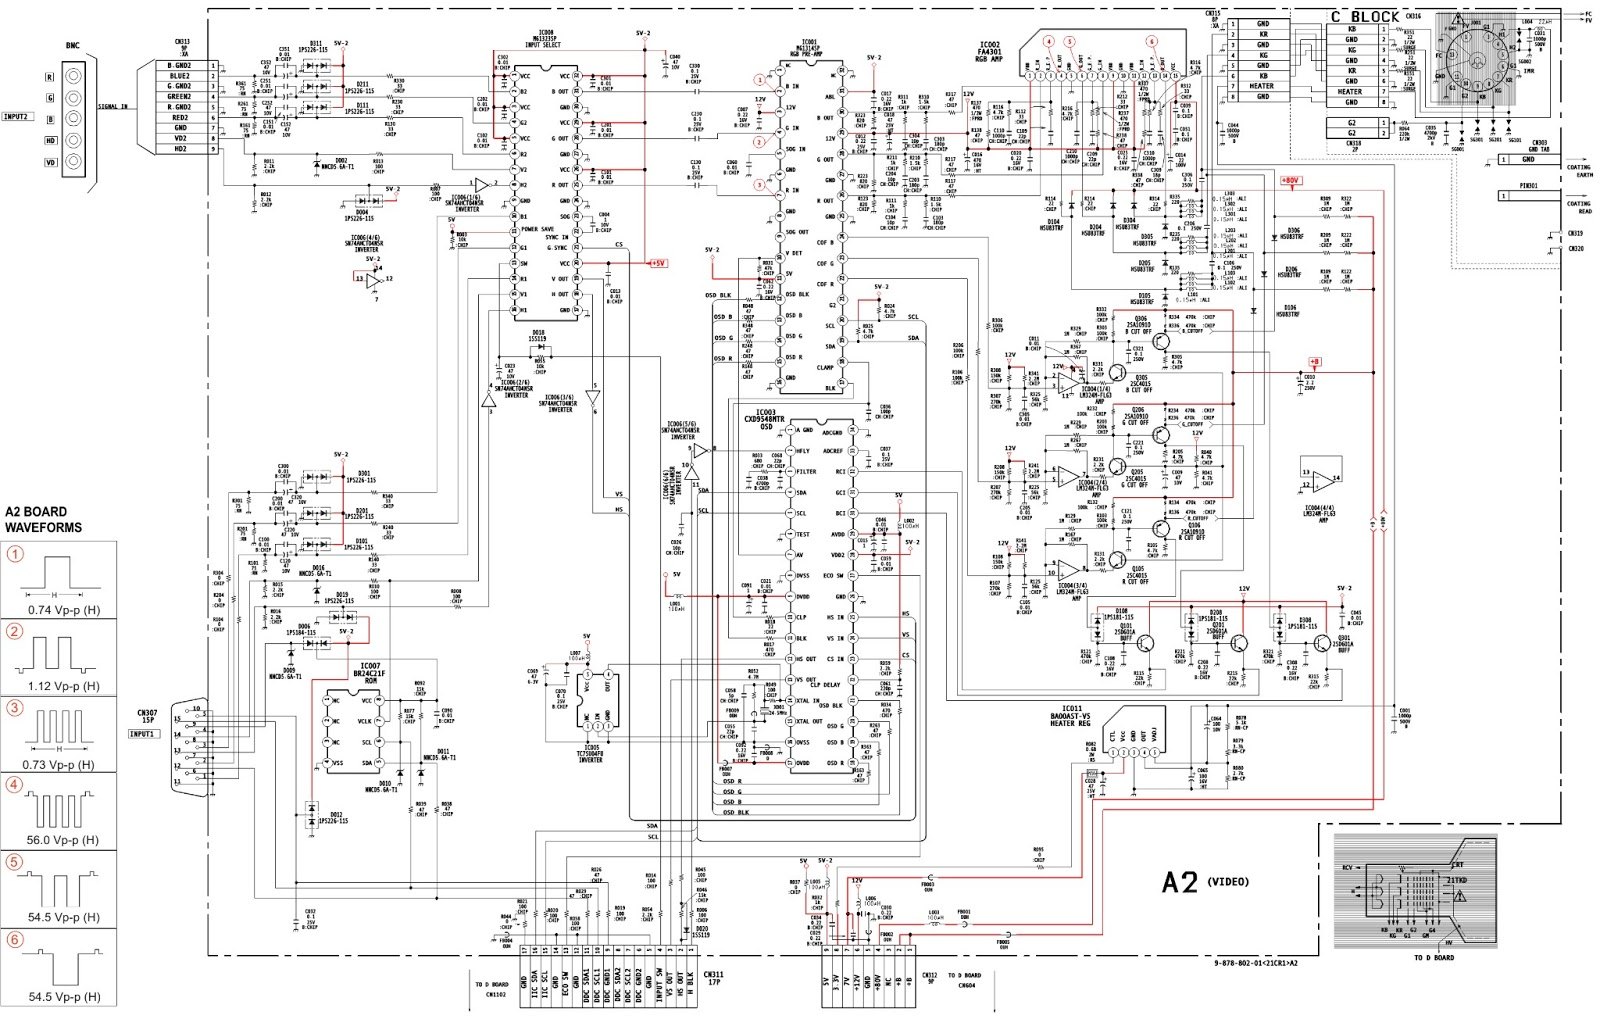 ps4 wiring diagram wiring diagram advanceps4 wiring diagram wiring diagram  data val ps4 fan wiring diagram